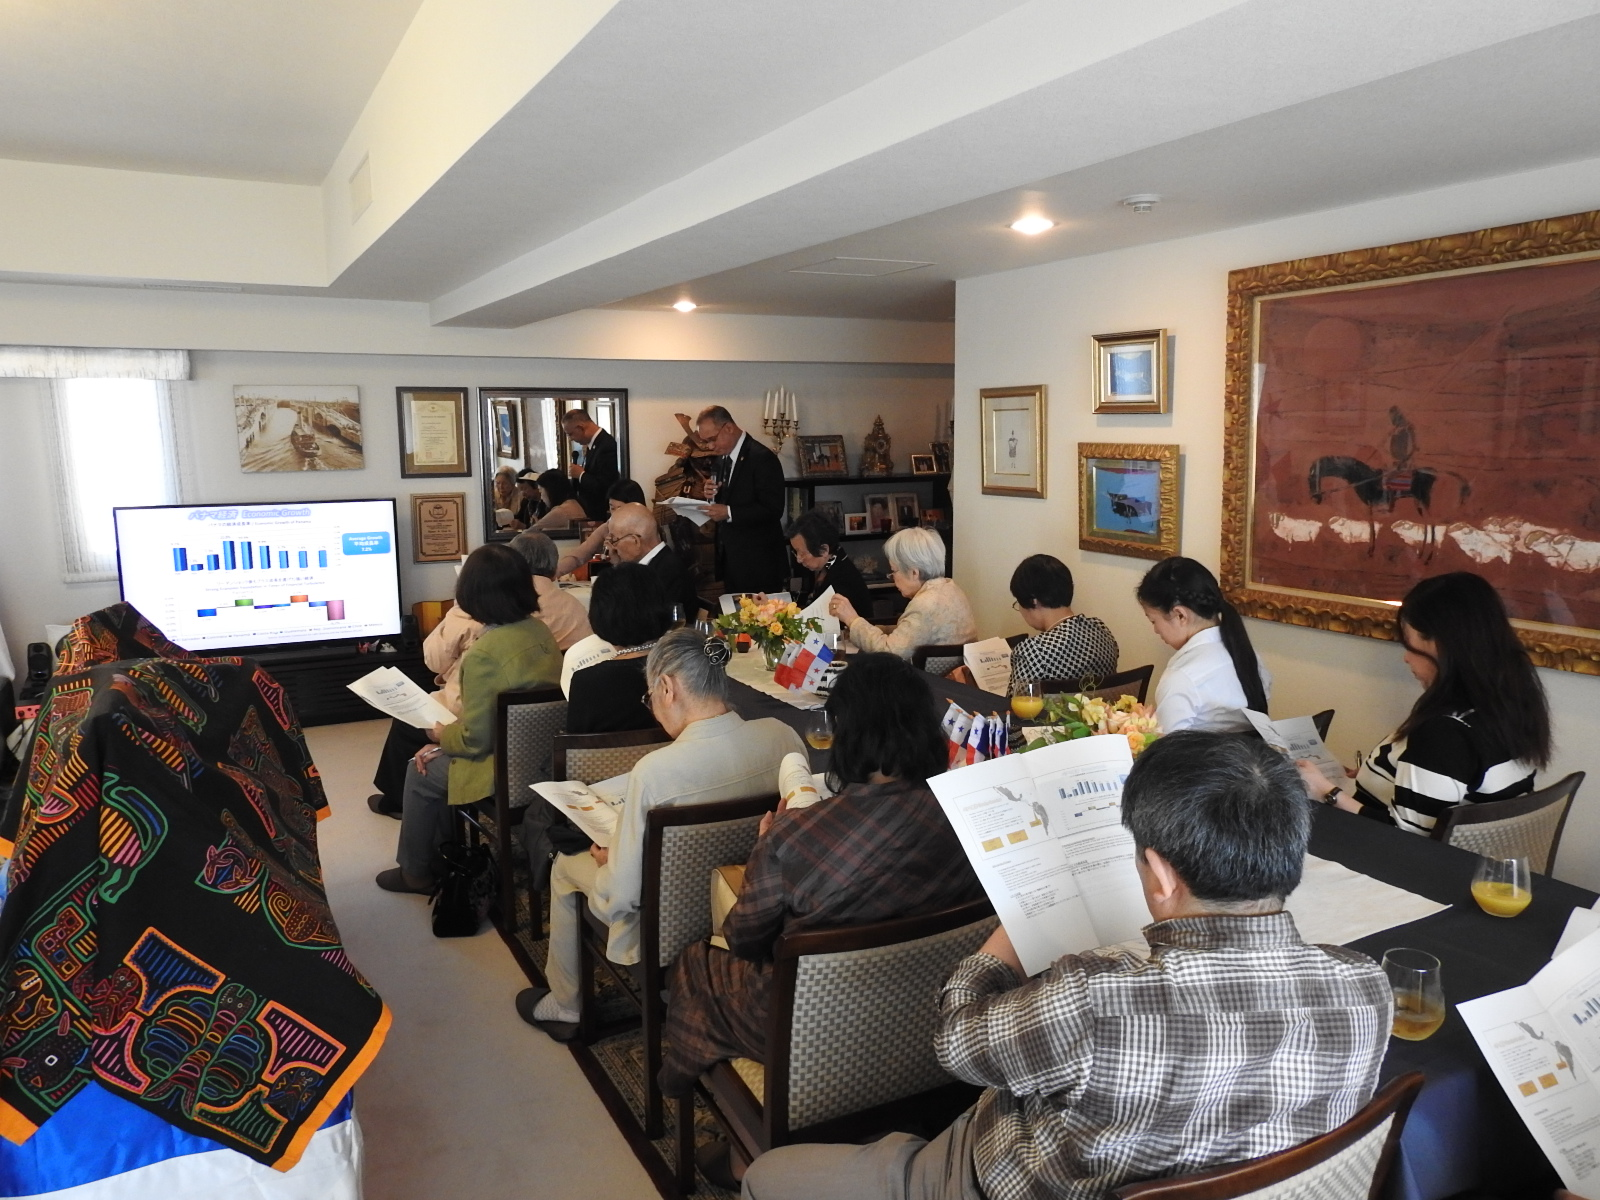 Participants, during the presentation of the Ambassador of Panama